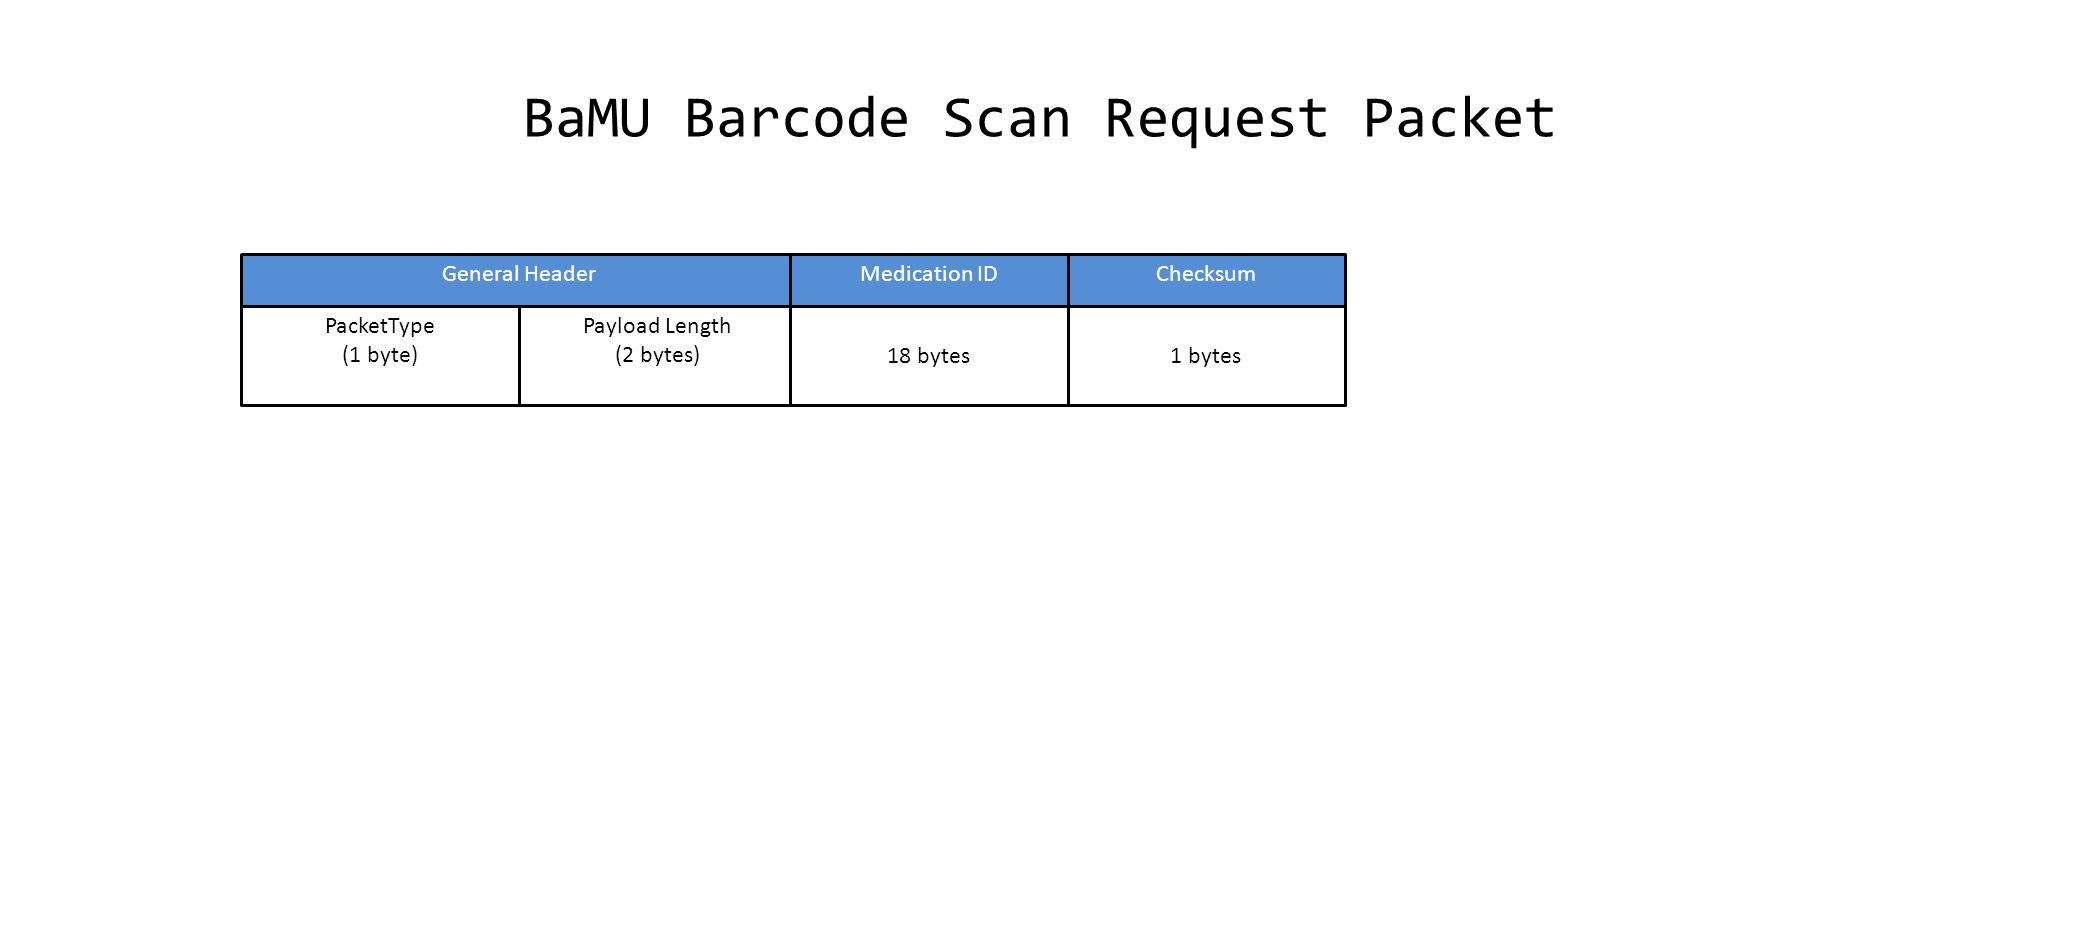 BaMU Barcode Scan Request Packet PacketType (1 byte) Payload Length (2 bytes) General Header 18 bytes Medication ID 1 bytes Checksum